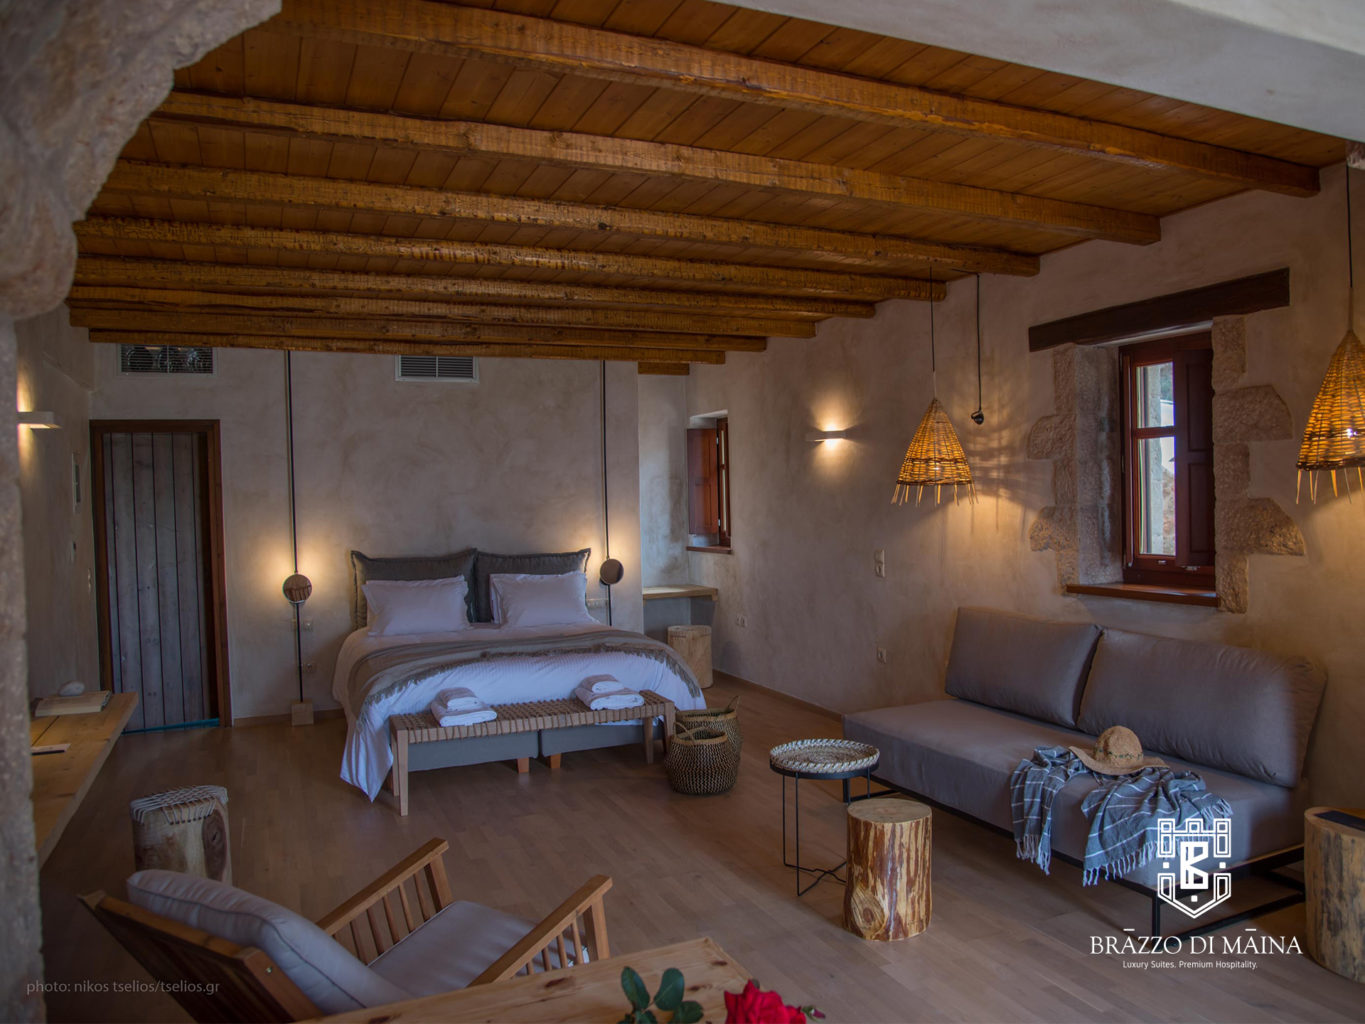 brazzo di maina Luxury Suites rooms